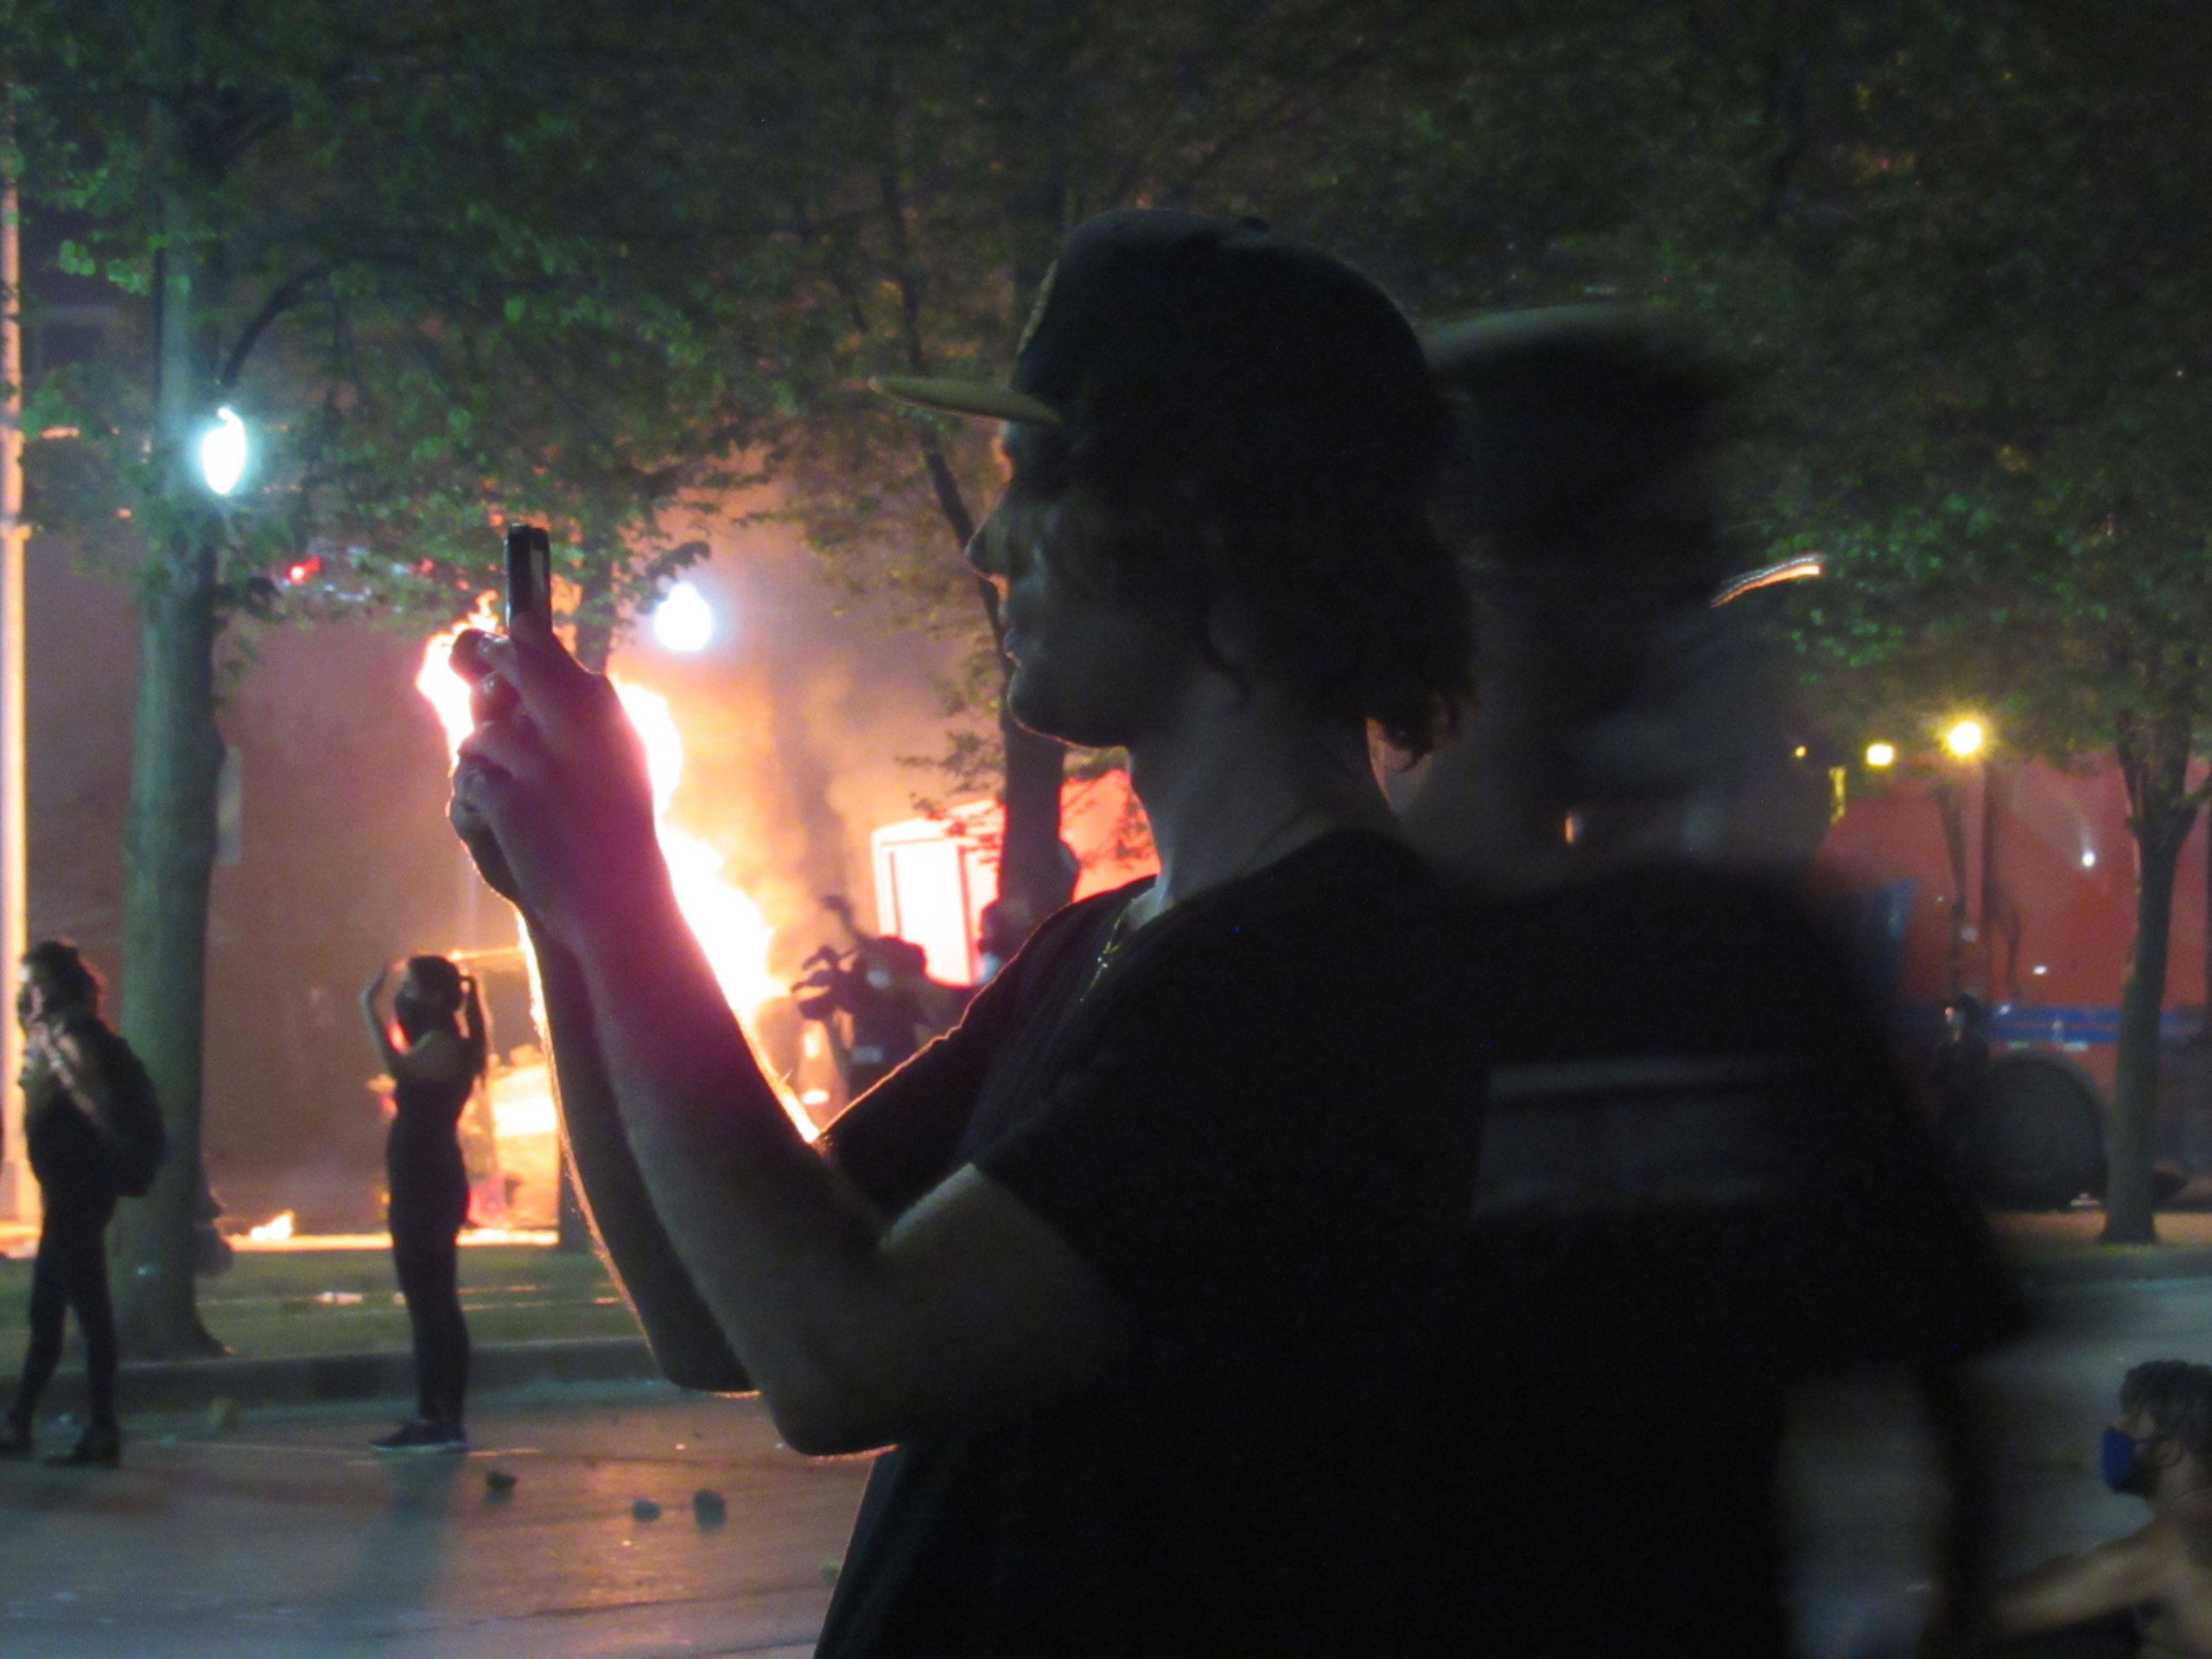 People look on at the clash between police and protesters in Kenosha on August 24, 2020. (Photo by Isiah Holmes)